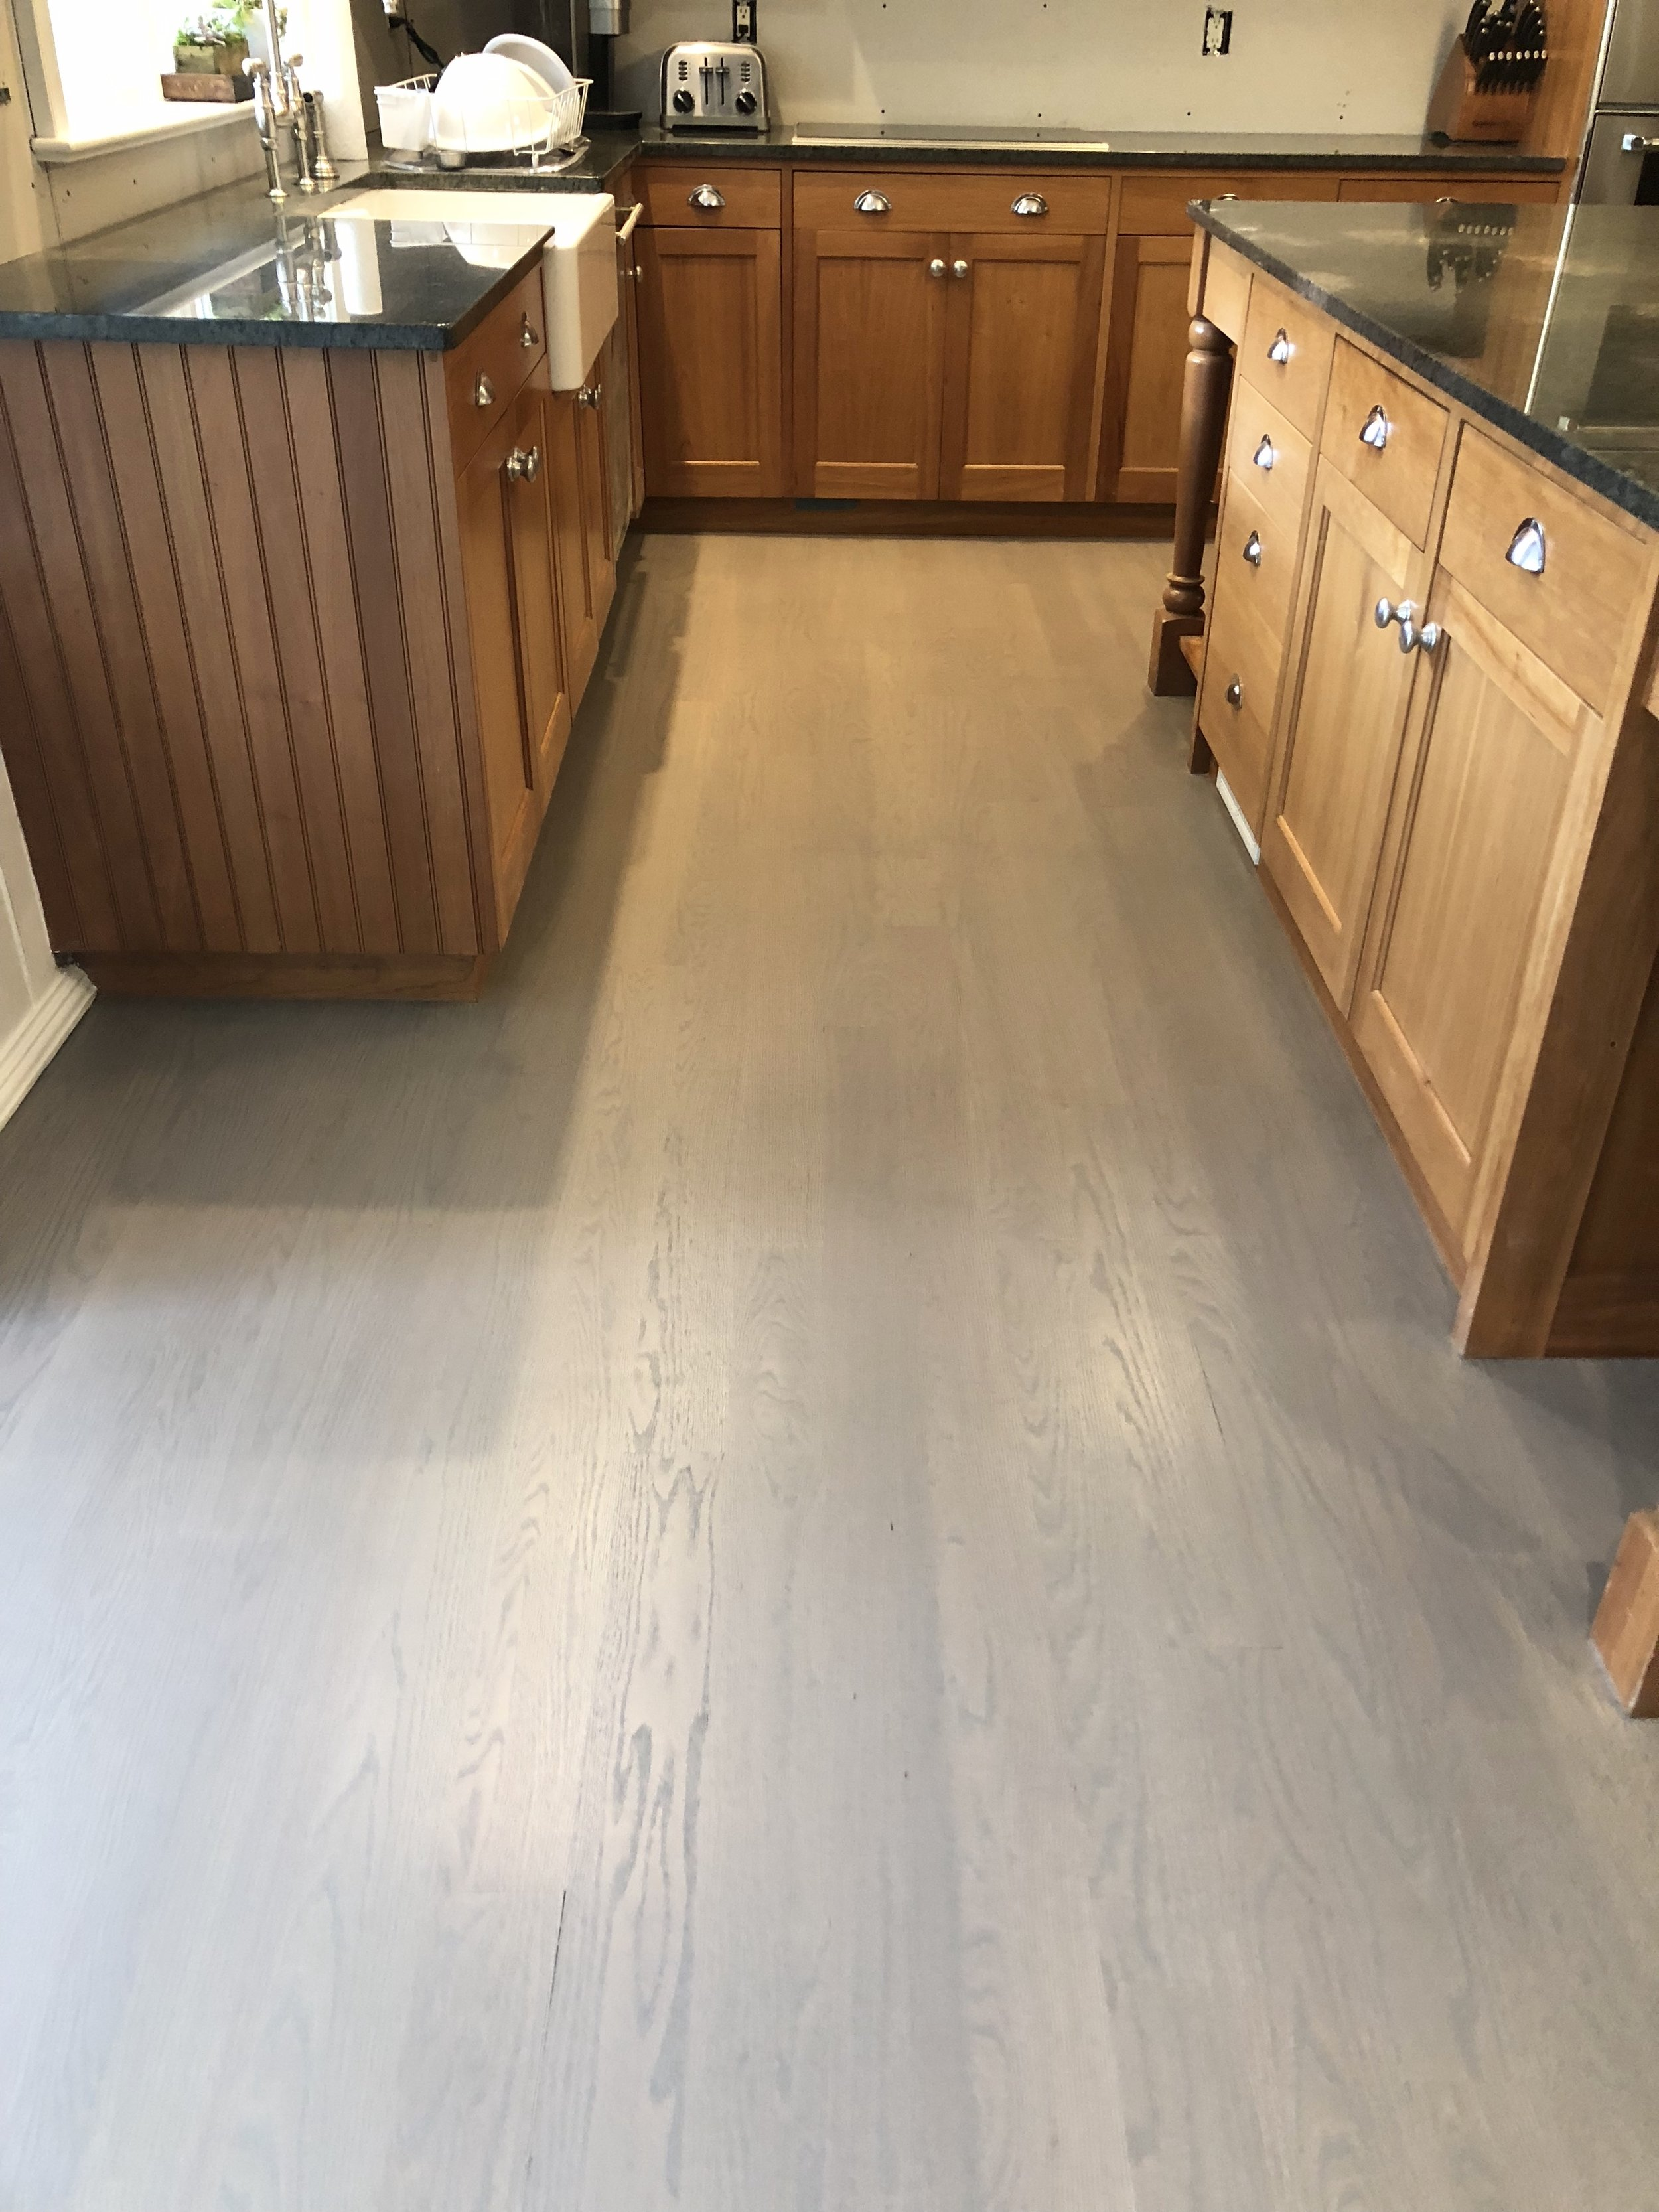 New Gray Floors + Old Orange Cabinets   We Strongly Suggest Changing Trim  And Cabinets To